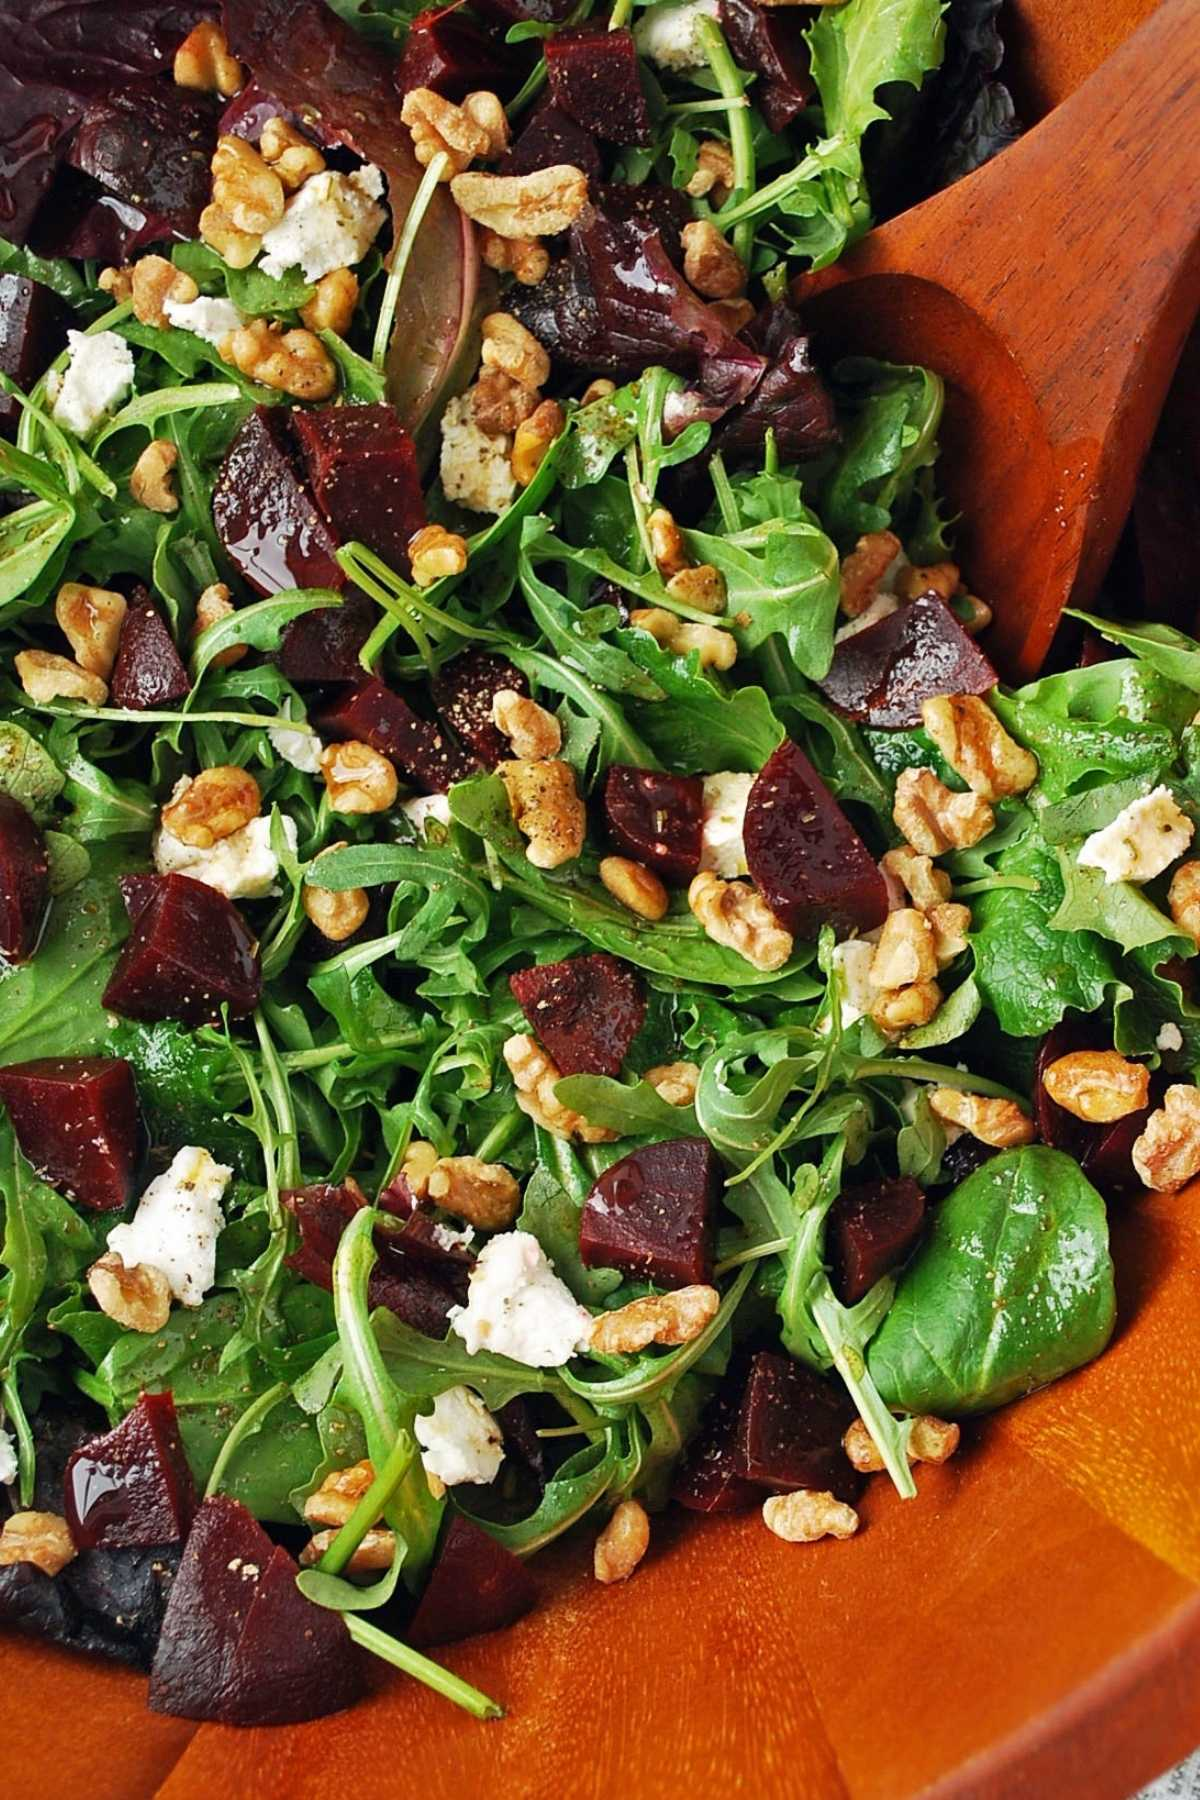 close up of a mixed green salad with beets, goat cheese, walnuts, and dressing being tossed together with a wooden spoon